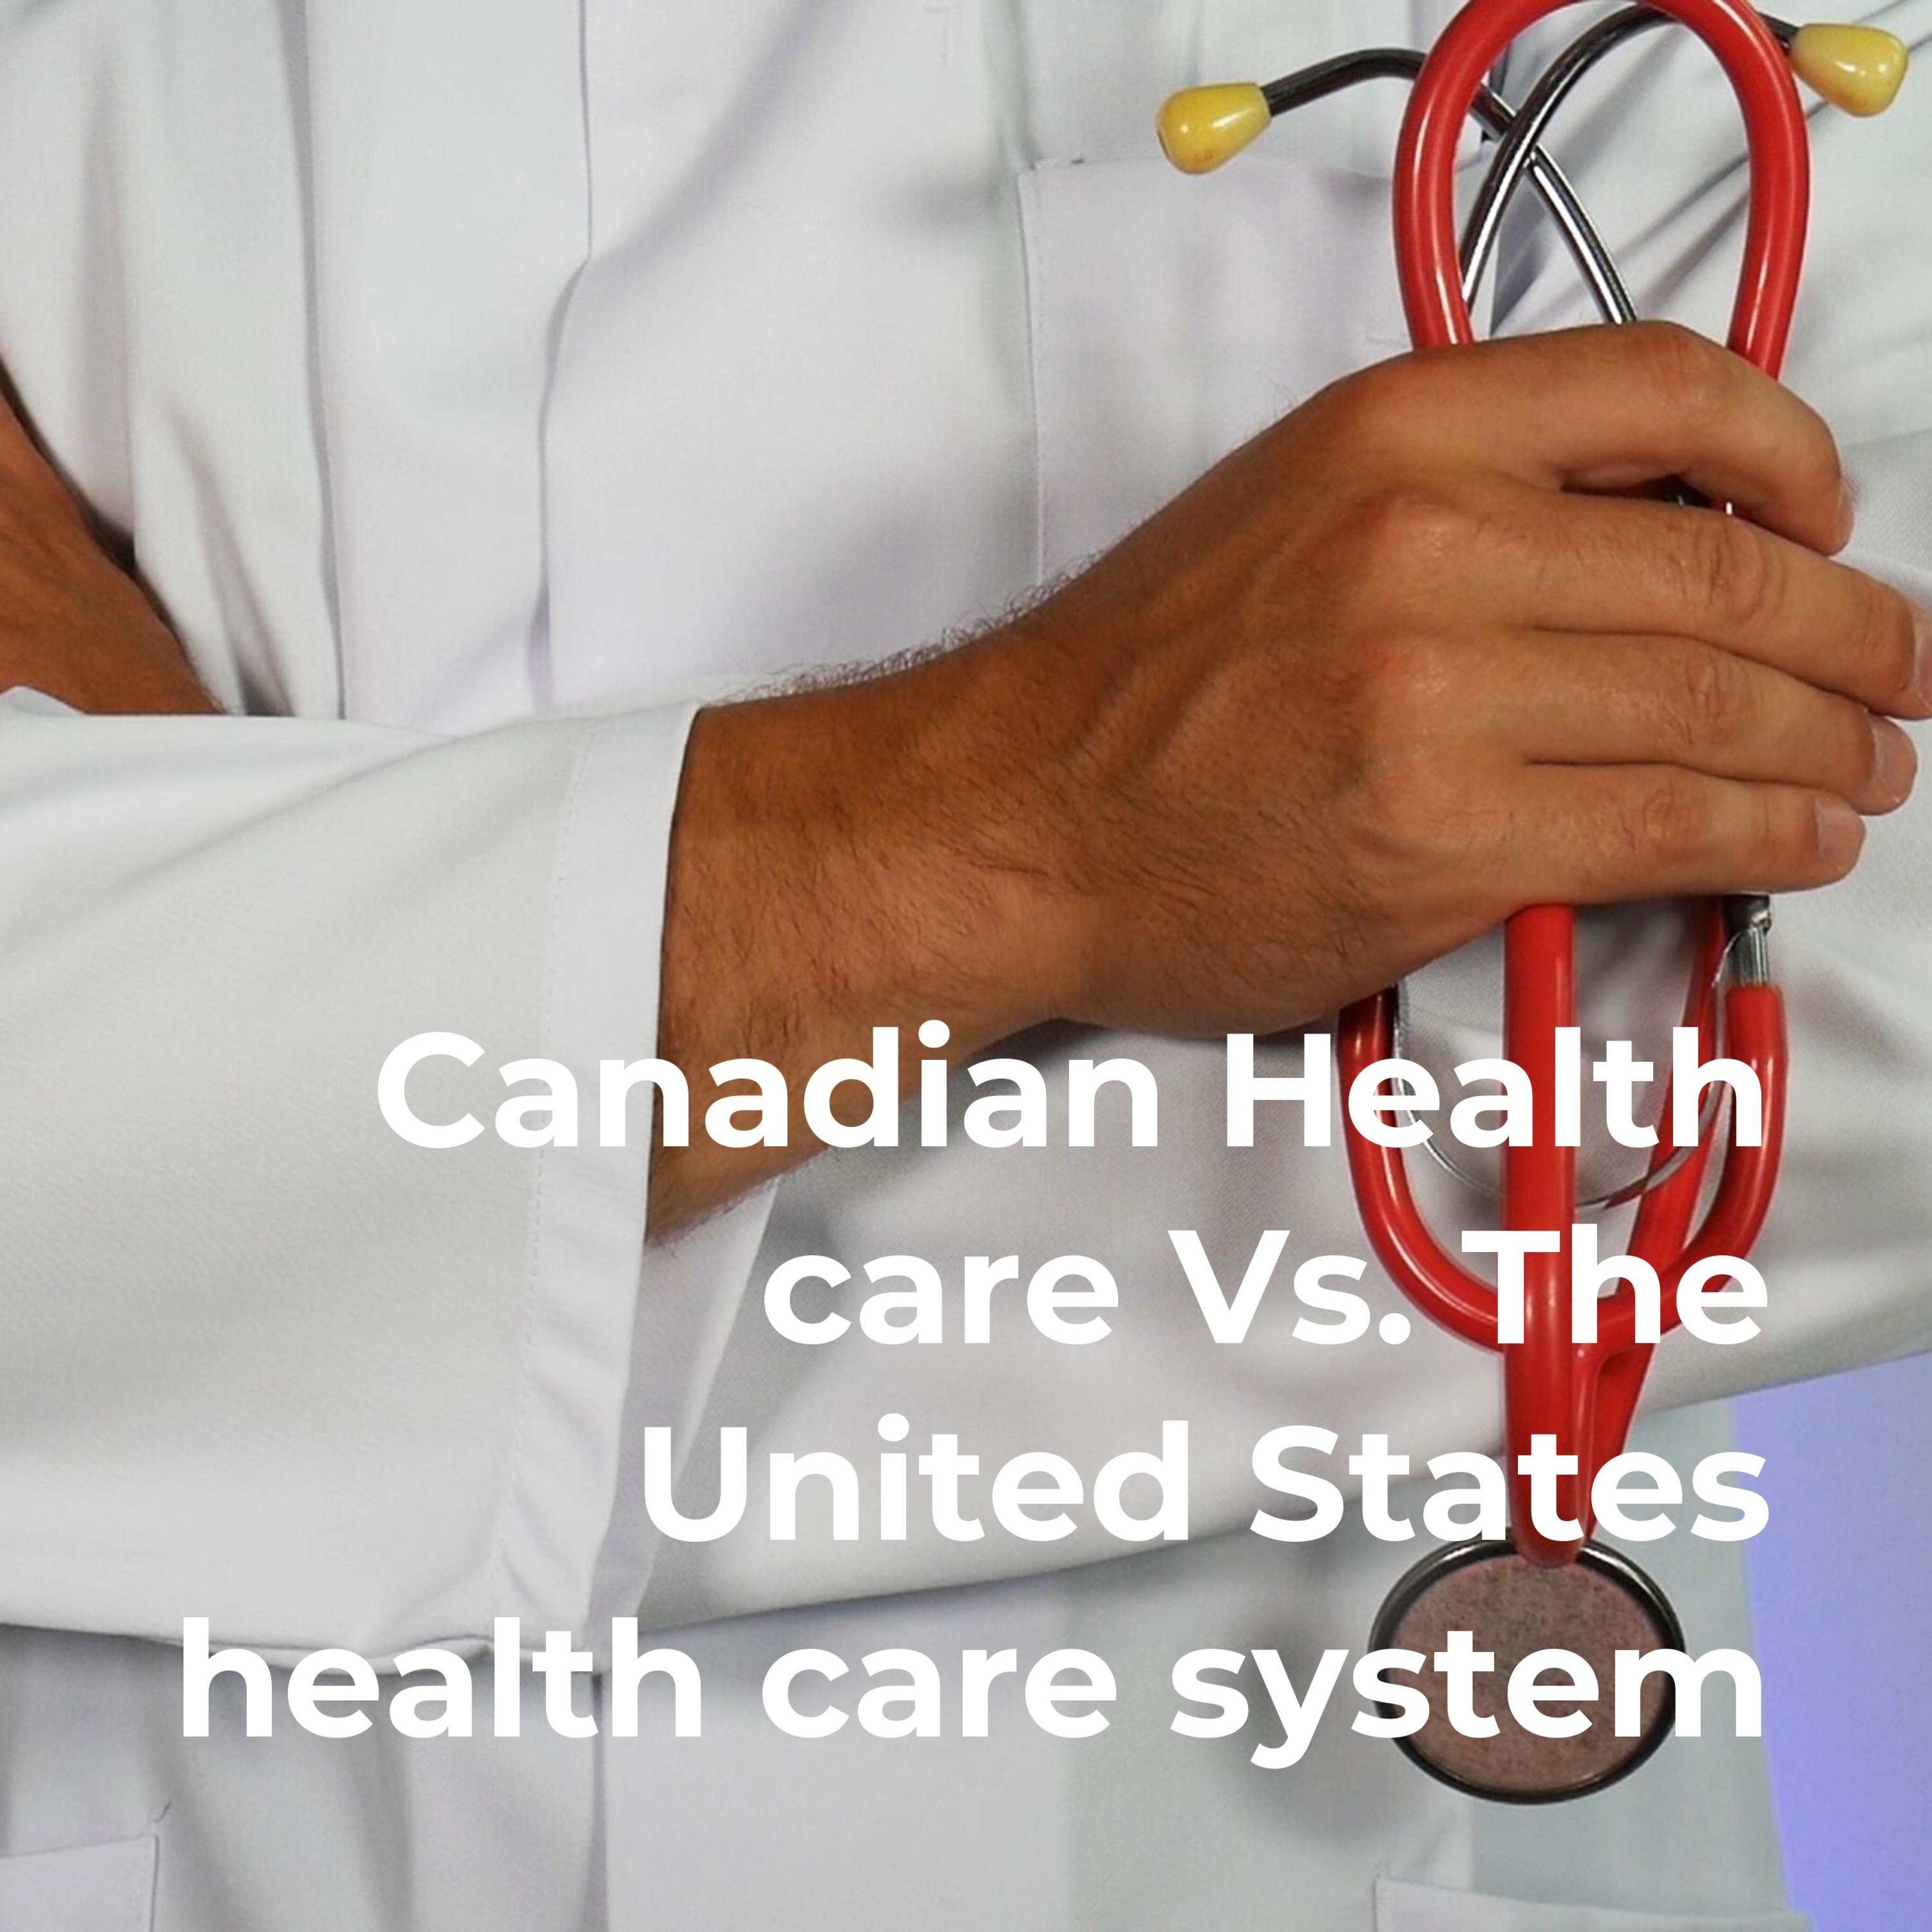 Canadian Health care Vs. The United States health care system